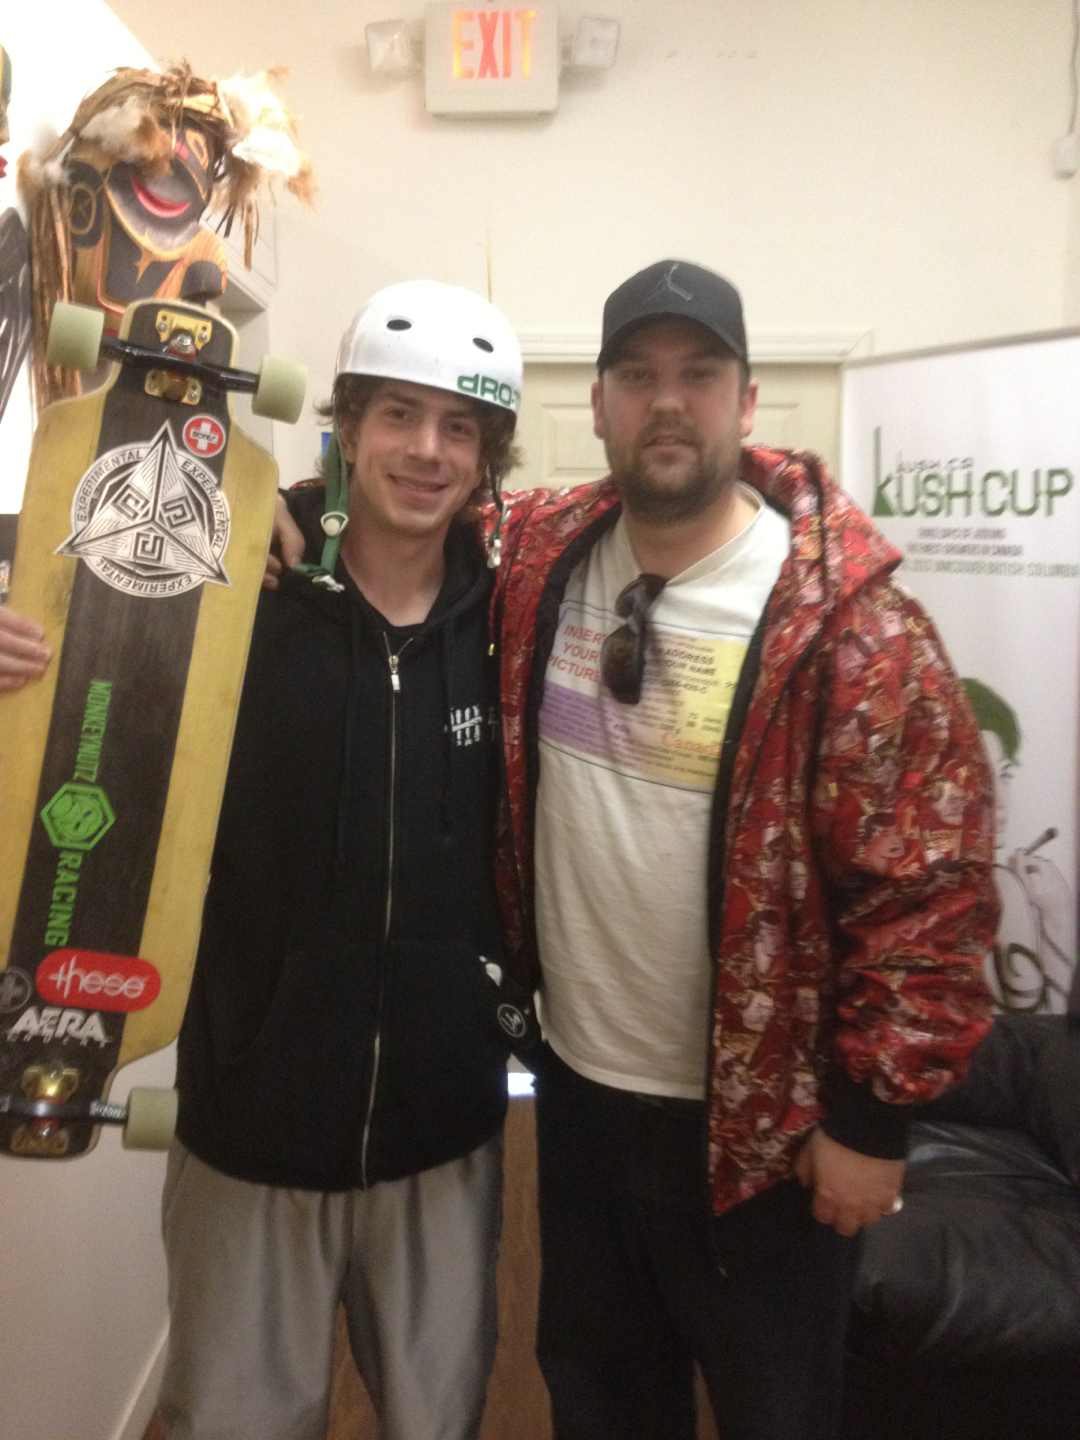 2 time world champion worlds fastest down hill skateboard Kevin Reimer